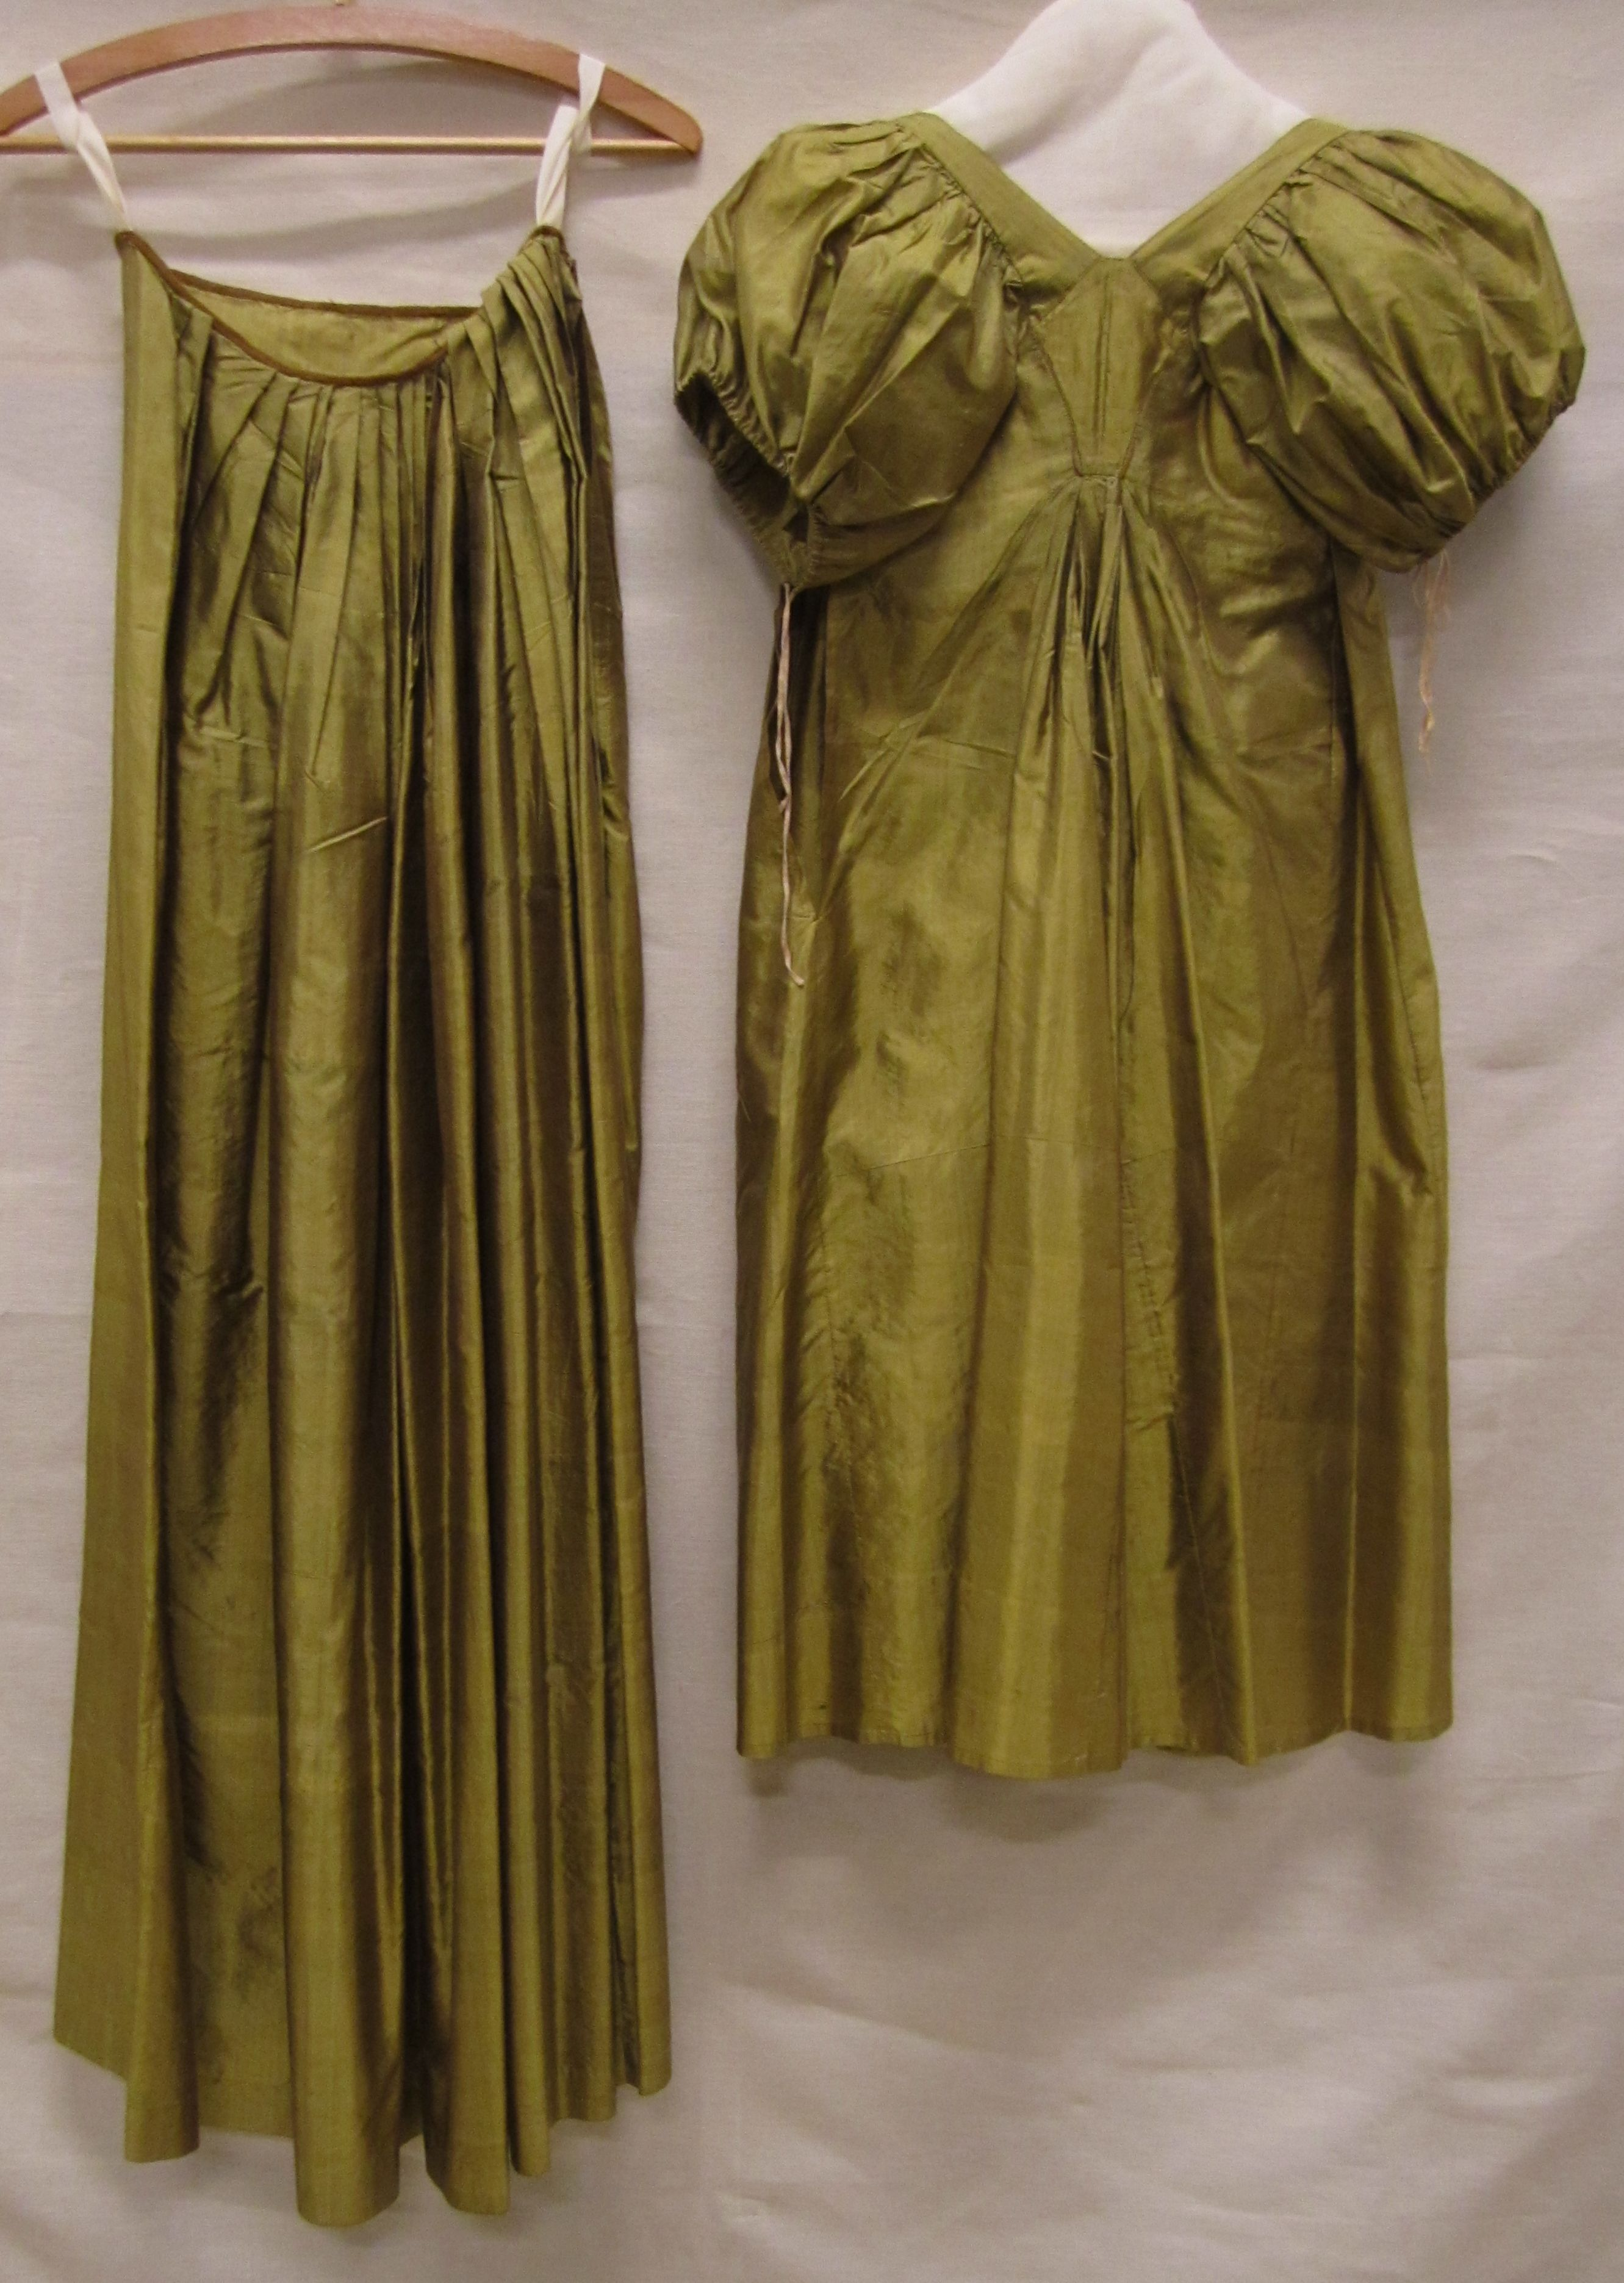 1800-15 ca. Unusual: Skirt and Over Gown with short puffed sleeves. Gemeentemuseum Den Haag.